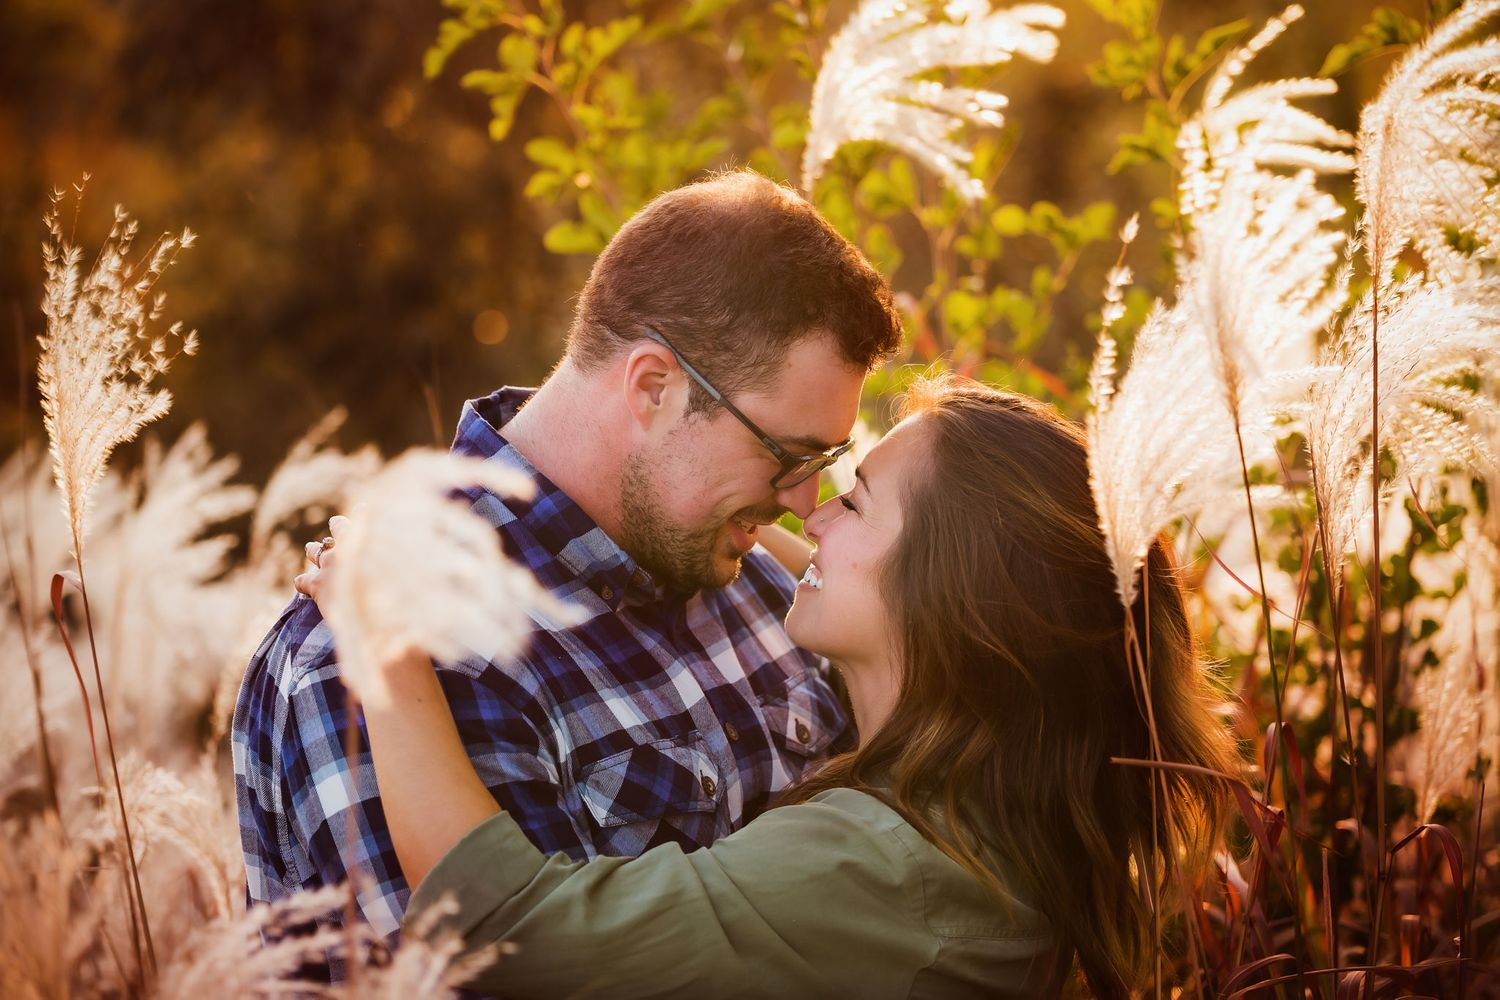 Fall portrait of a couple embracing in a sunlit field.